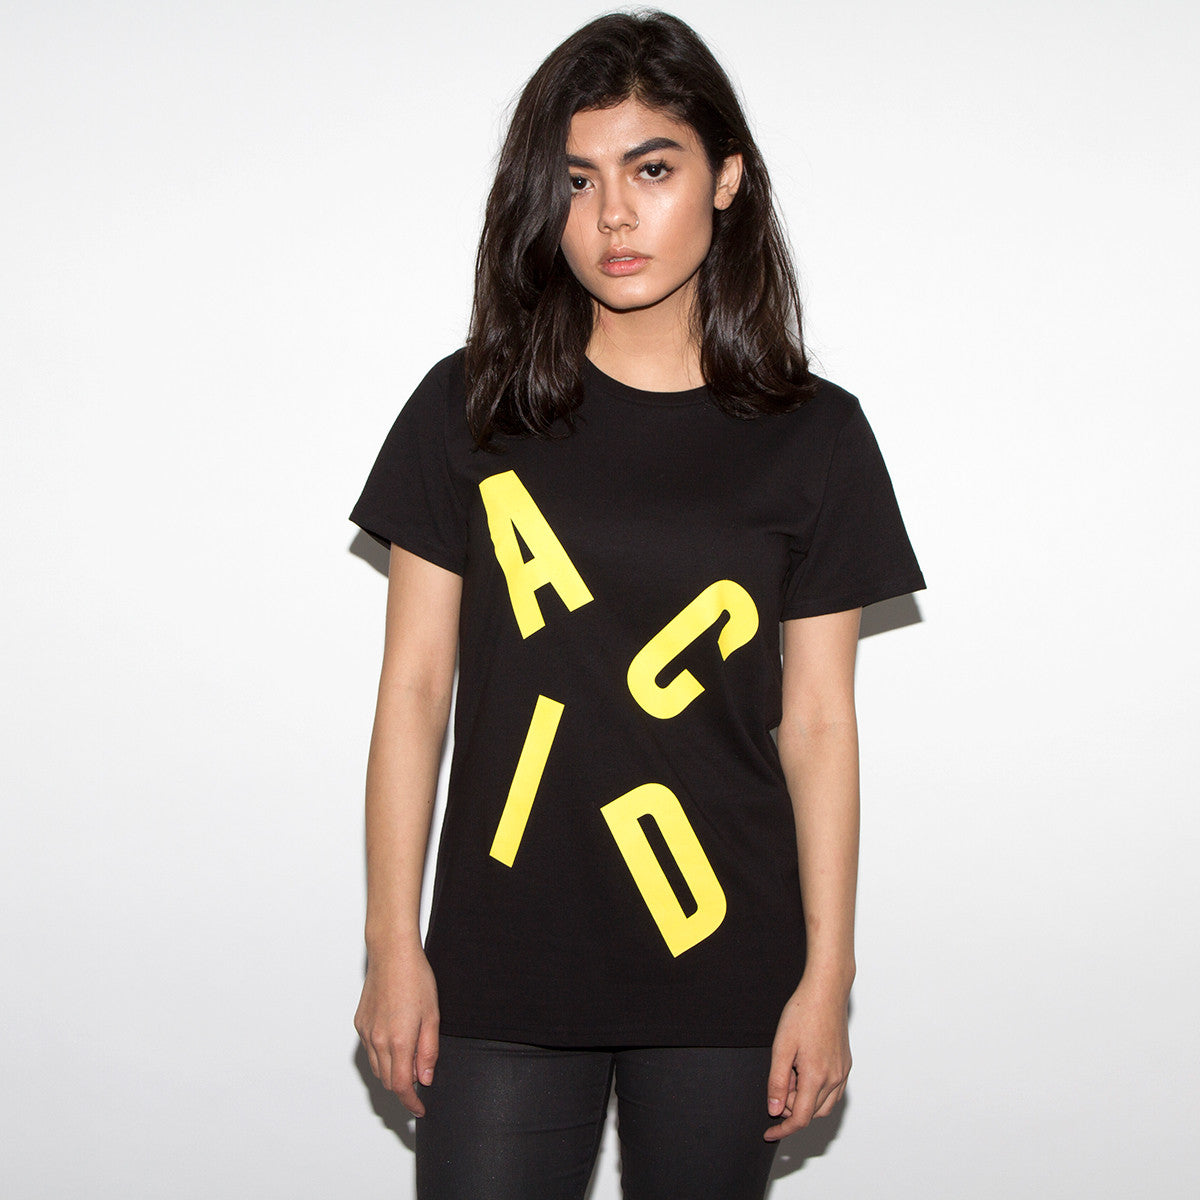 6ba5380a7471 Acid Letter - Women's Tshirt - Black | Wasted Heroes